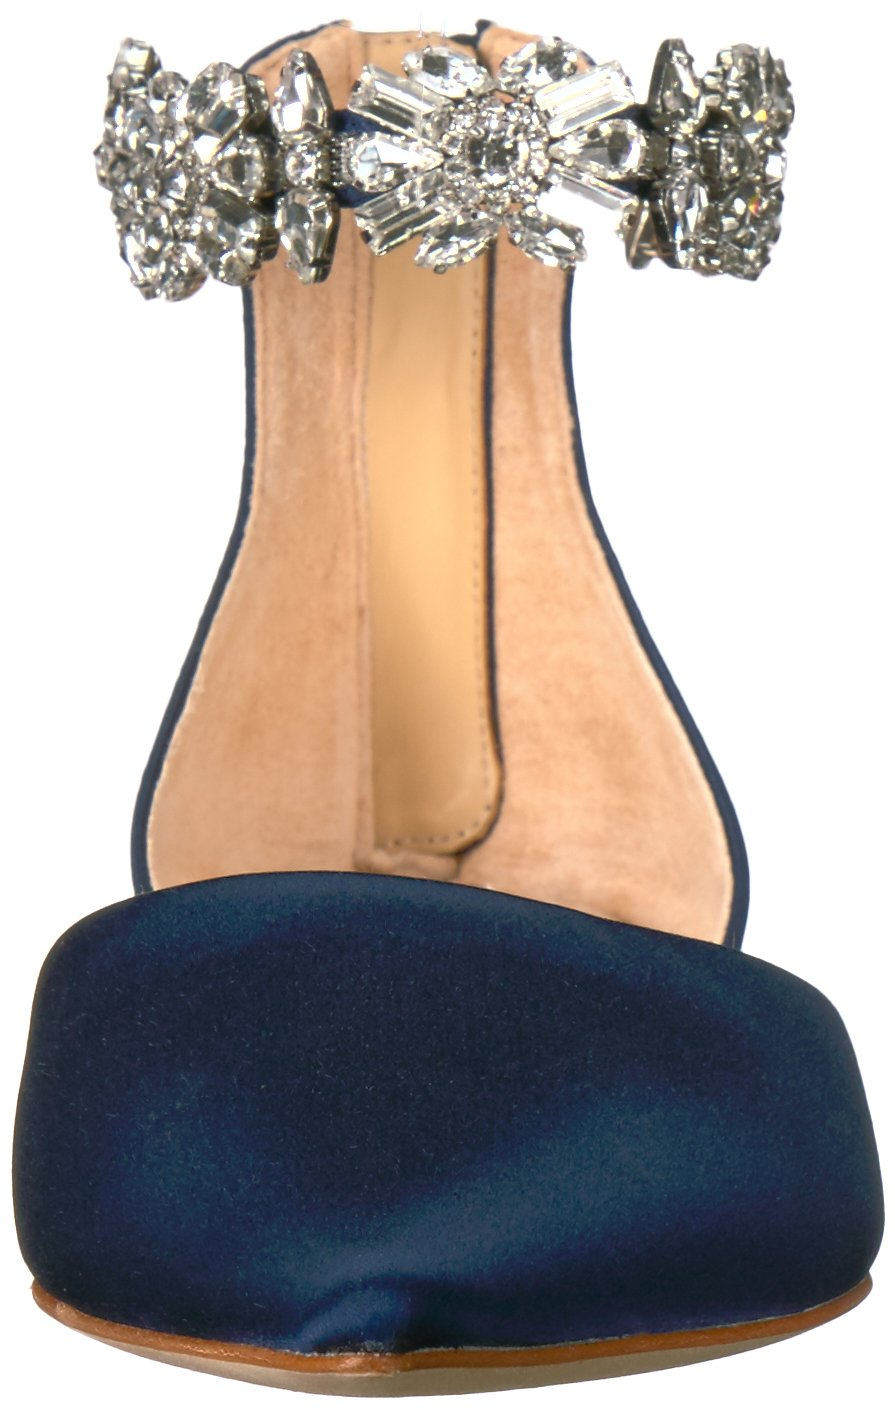 Badgley Mischka Women's Morgen Mary Jane US|Midnight Flat B07351T135 8.5 B(M) US|Midnight Jane d5b8f6